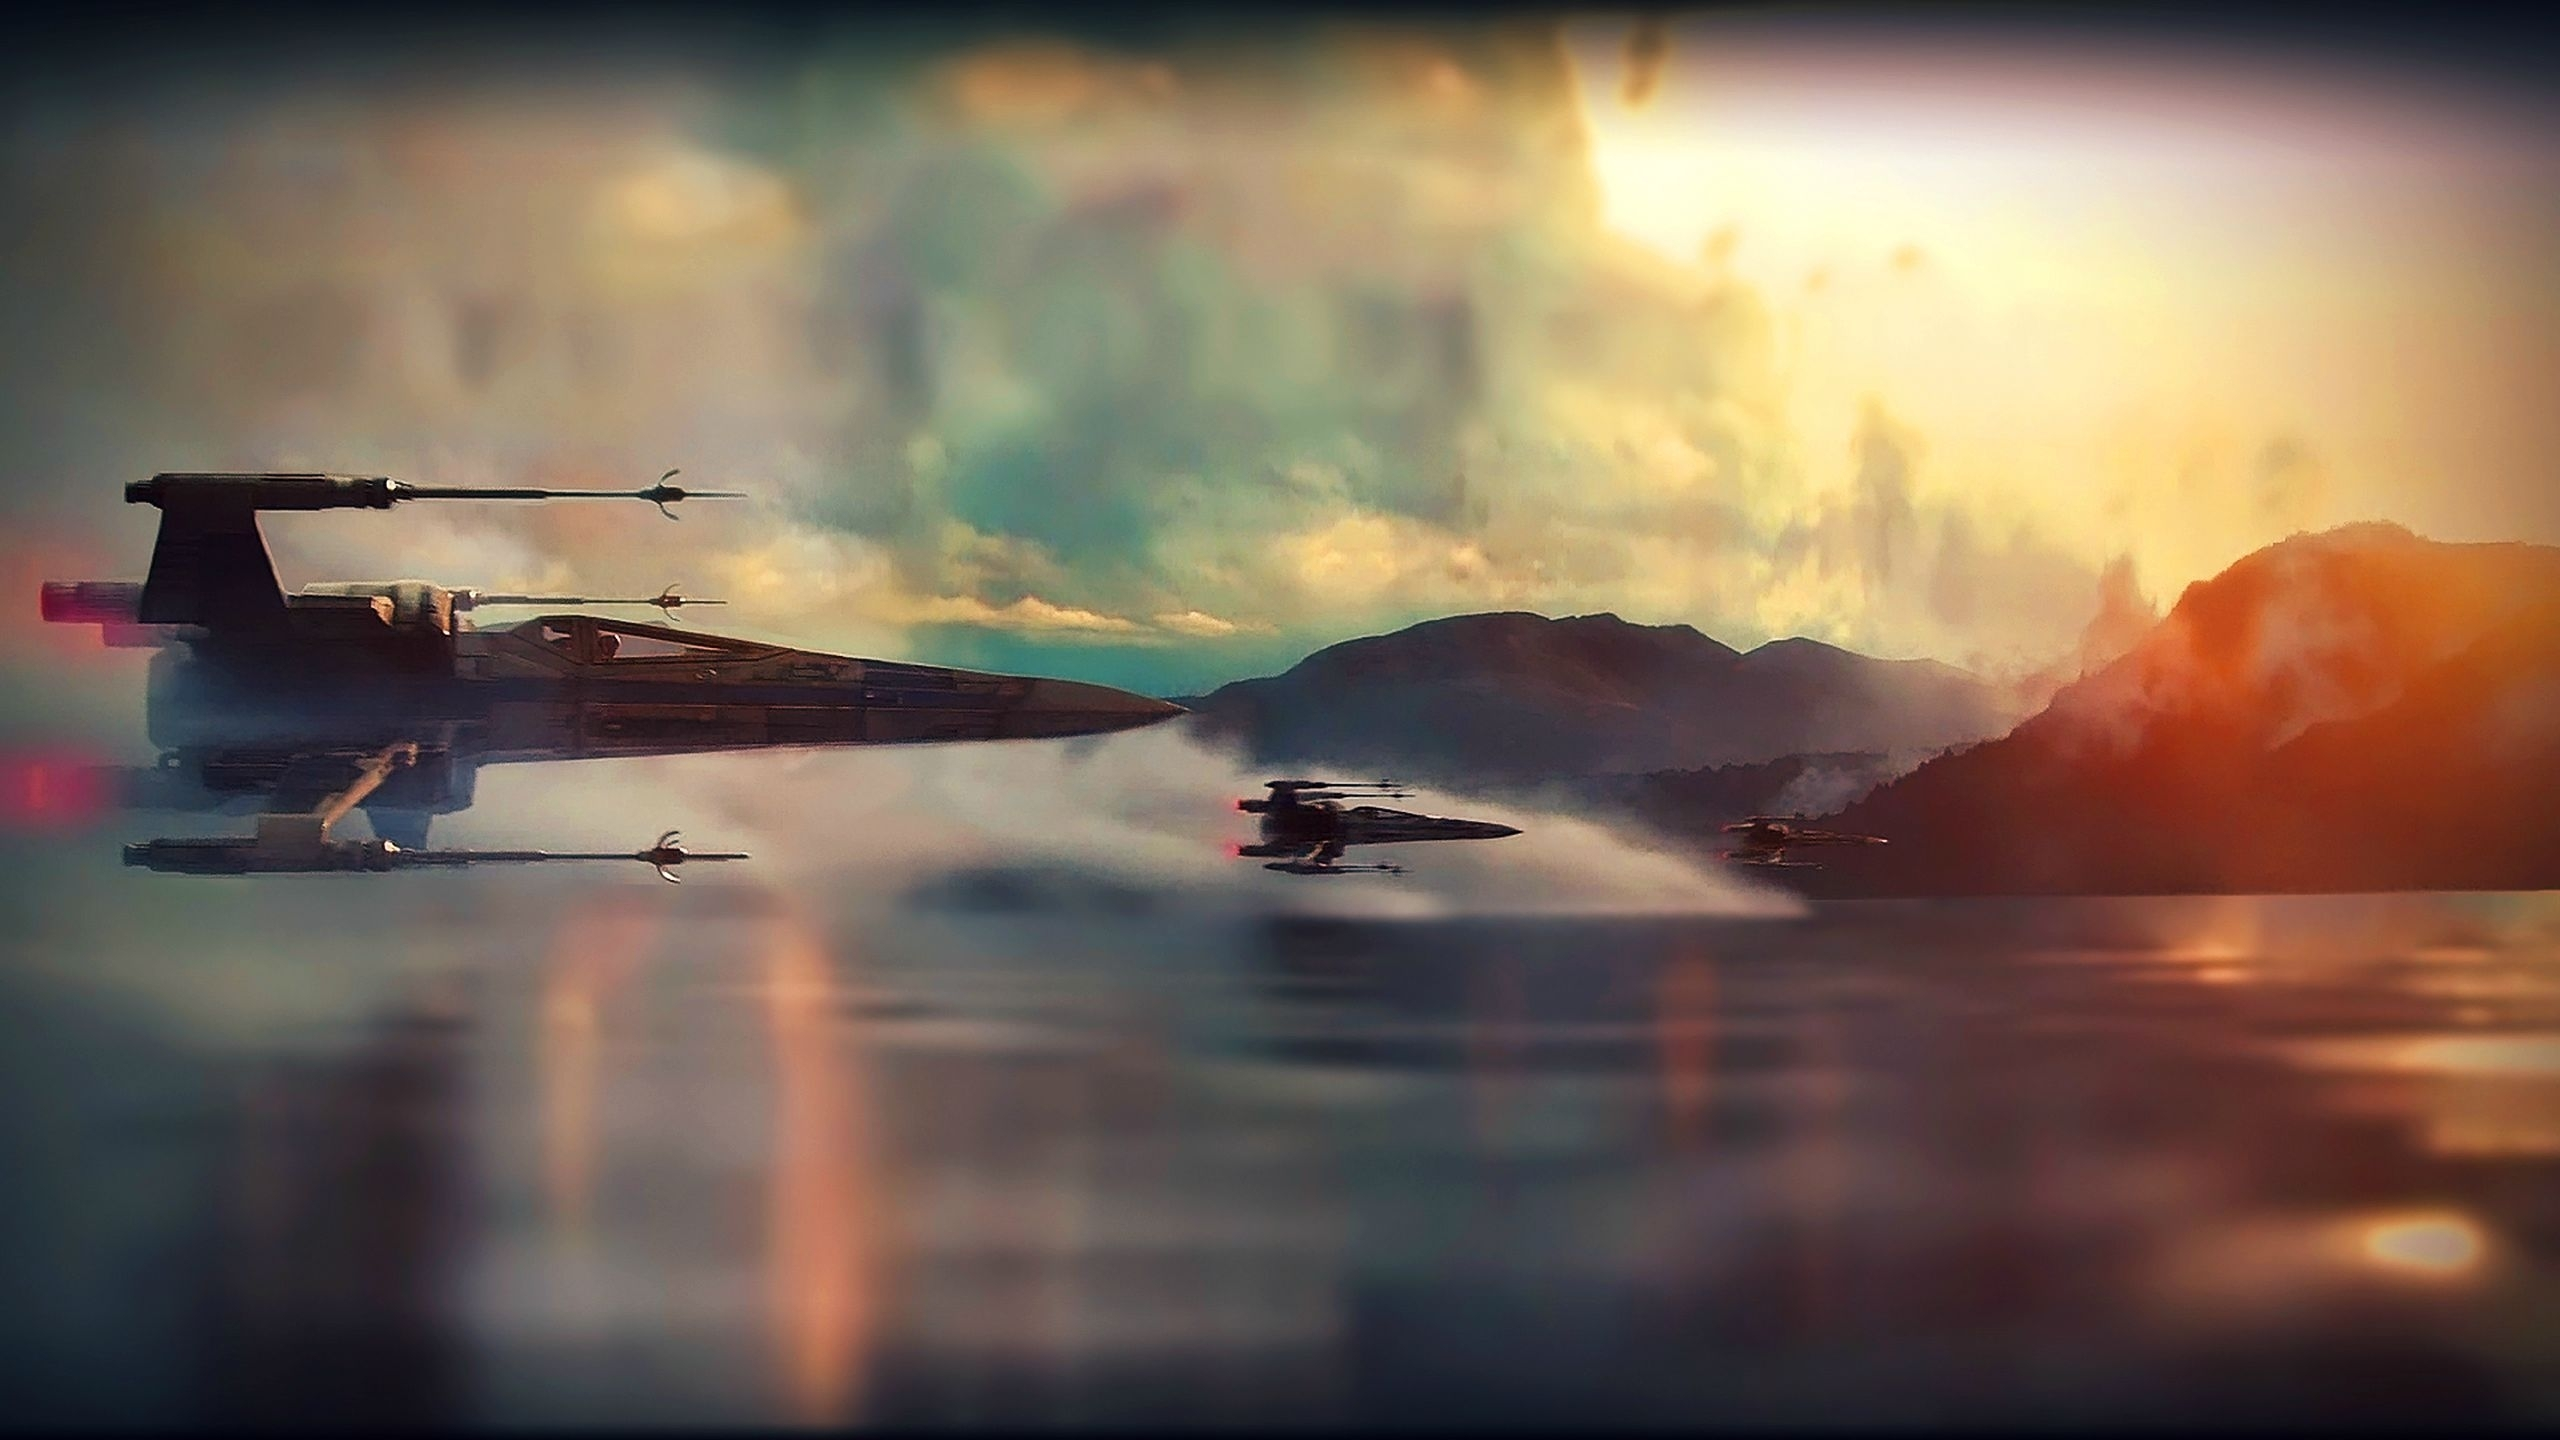 star wars ep vii: the force awakens teaser x-wing super saturated